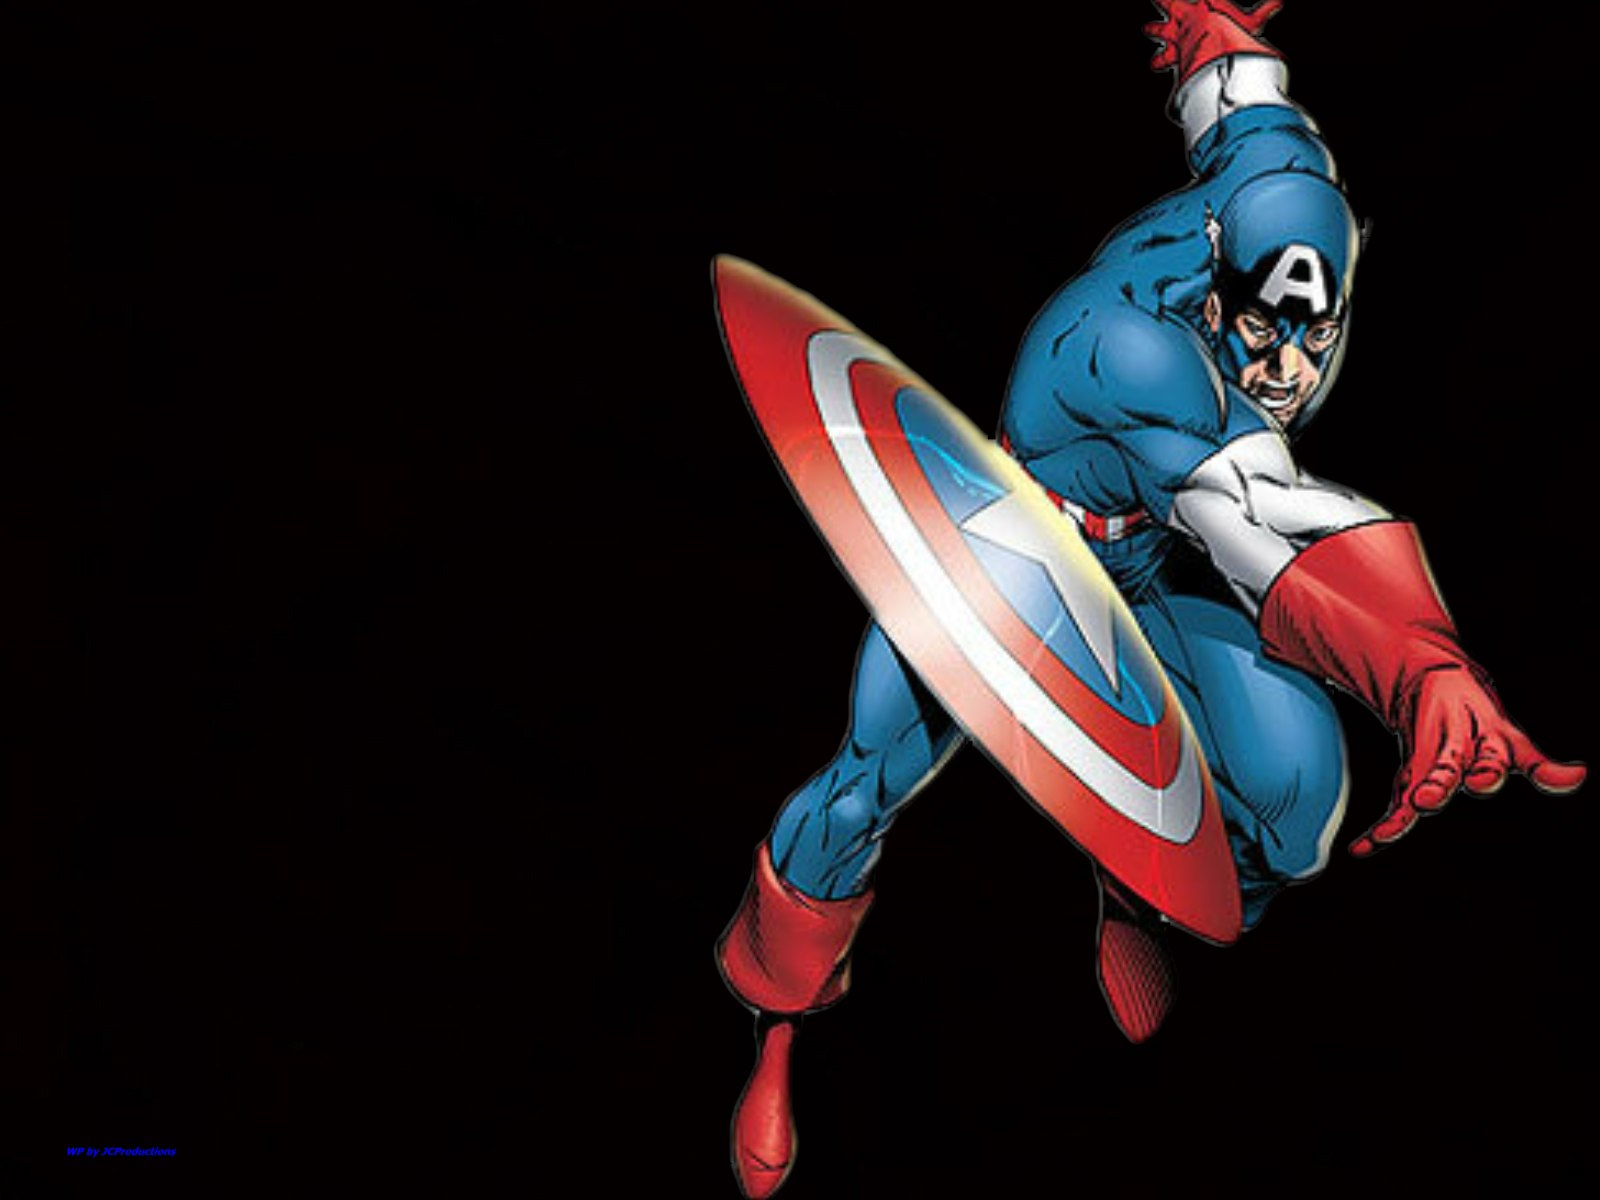 Captain America wallpapers Captain America background   Page 3 1600x1200